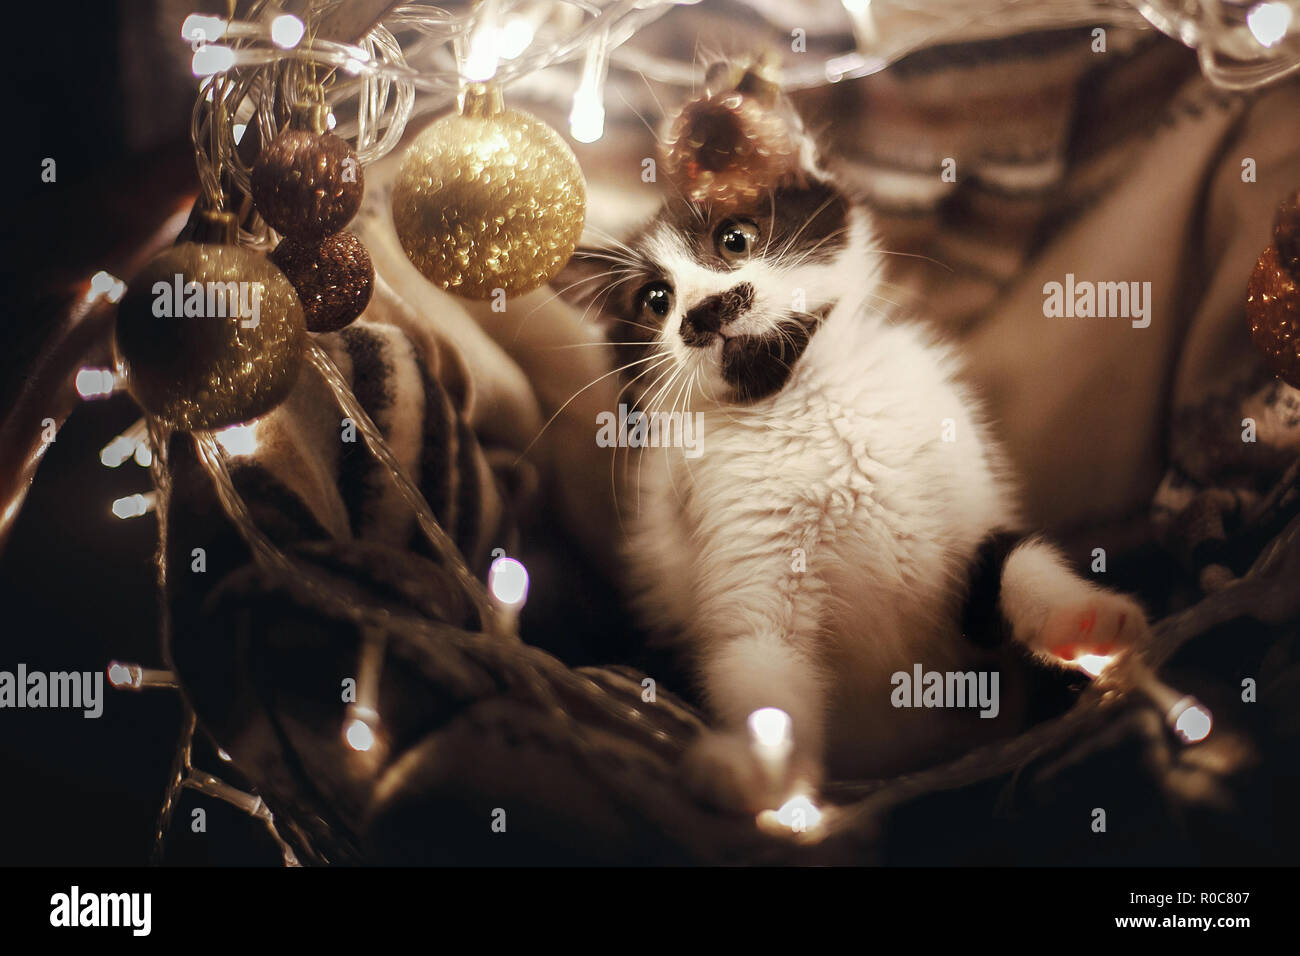 Cute kitty playing with ornaments in basket with lights under christmas tree in festive room. Adorable funny kitten with amazing eyes. Merry Christmas Stock Photo